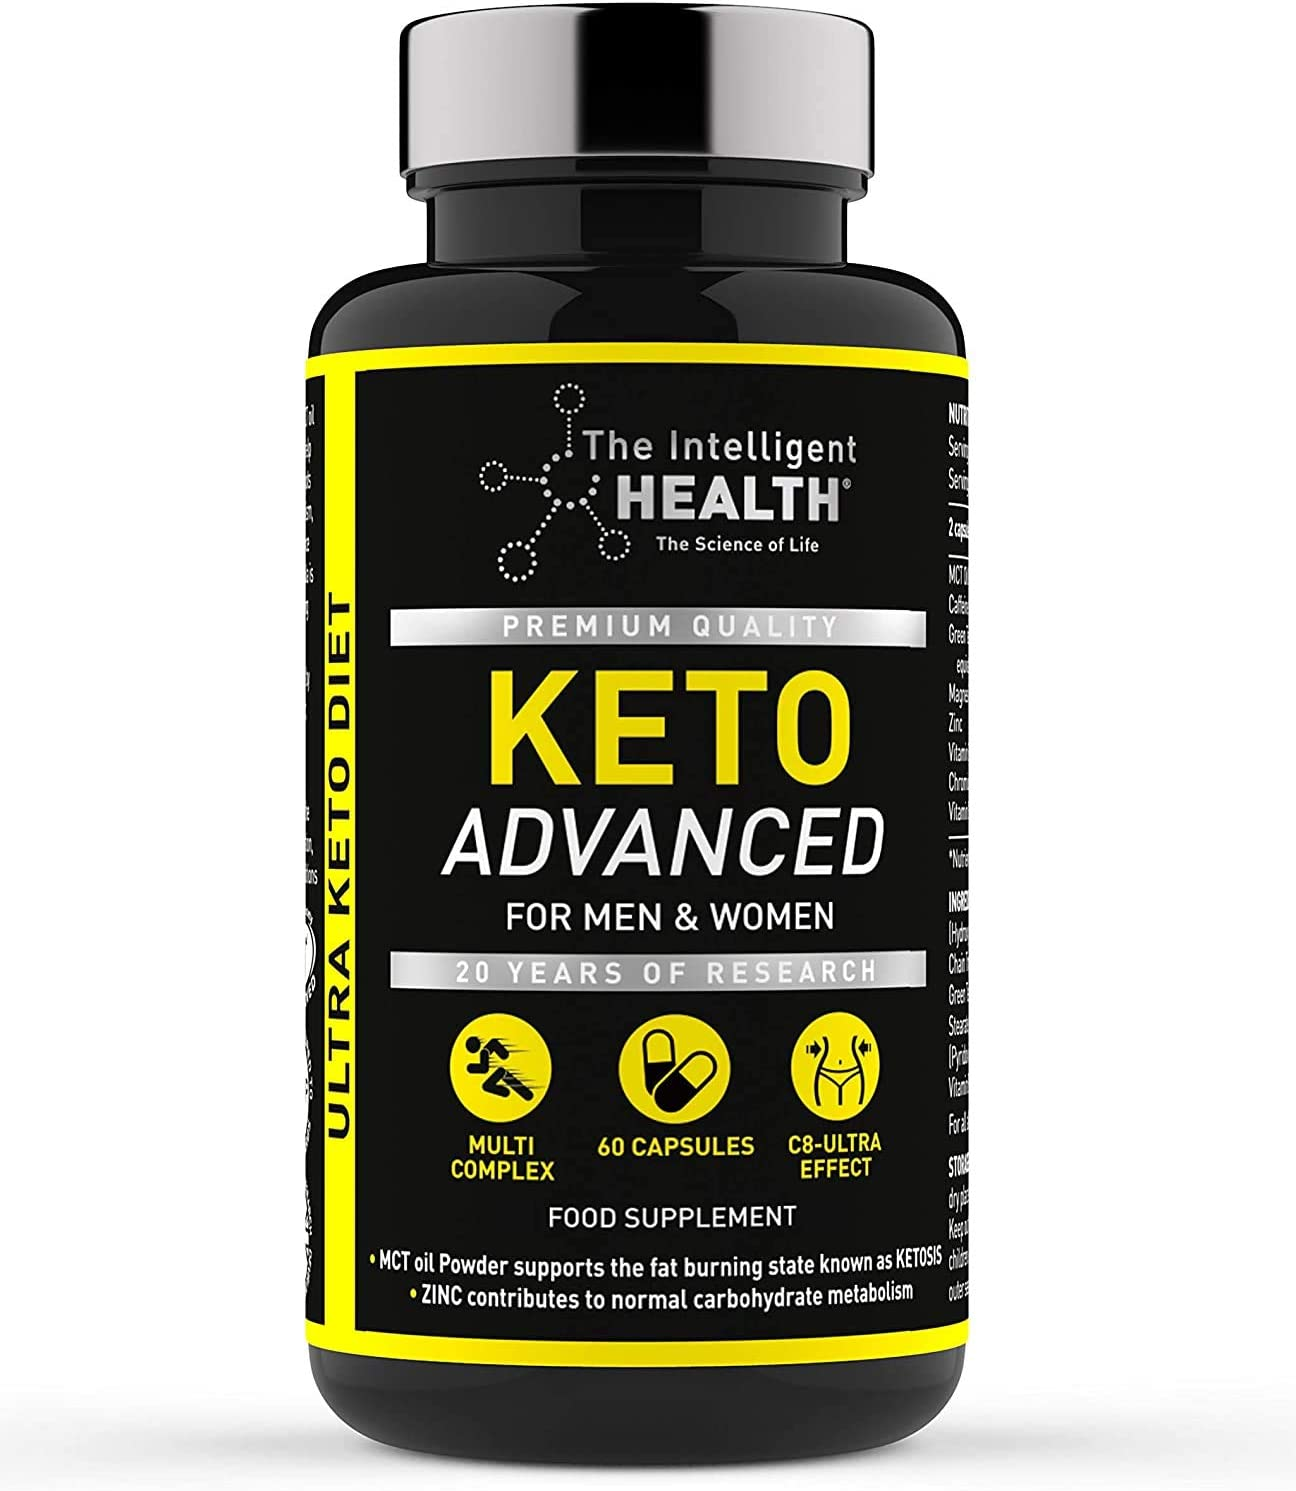 keto diet pills are they safe